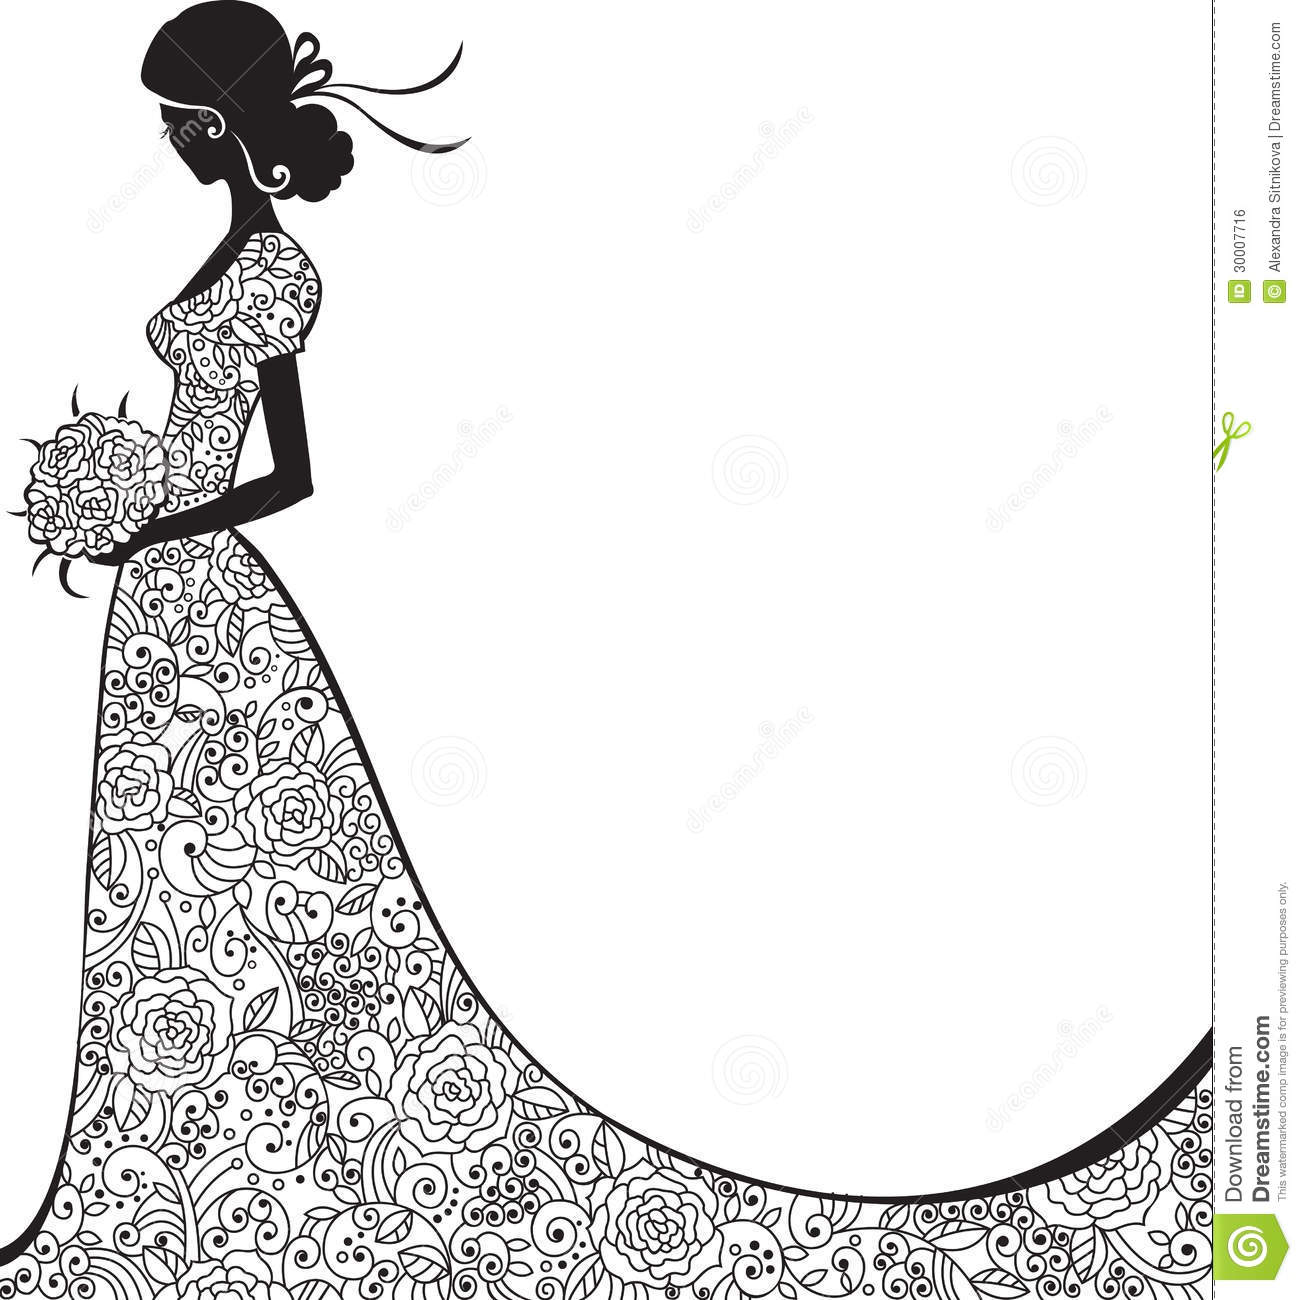 Bridal Shower Clipart Black And White.